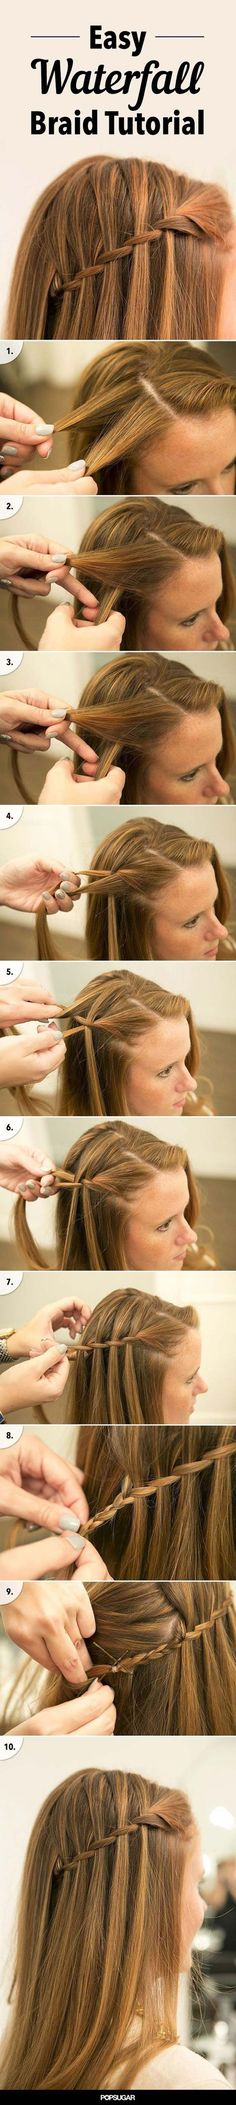 Fast Easy Formal Party Hairstyles for Long Hair DIY Ideas 2018 . - Fast simple formal party hairstyles for long hair DIY ideas 2018 # formal - Party Hairstyles For Long Hair, Easy To Do Hairstyles, Hairstyles For School, Wedding Hairstyles, Beautiful Hairstyles, Latest Hairstyles, School Hairdos, Everyday Hairstyles, Formal Hairstyles